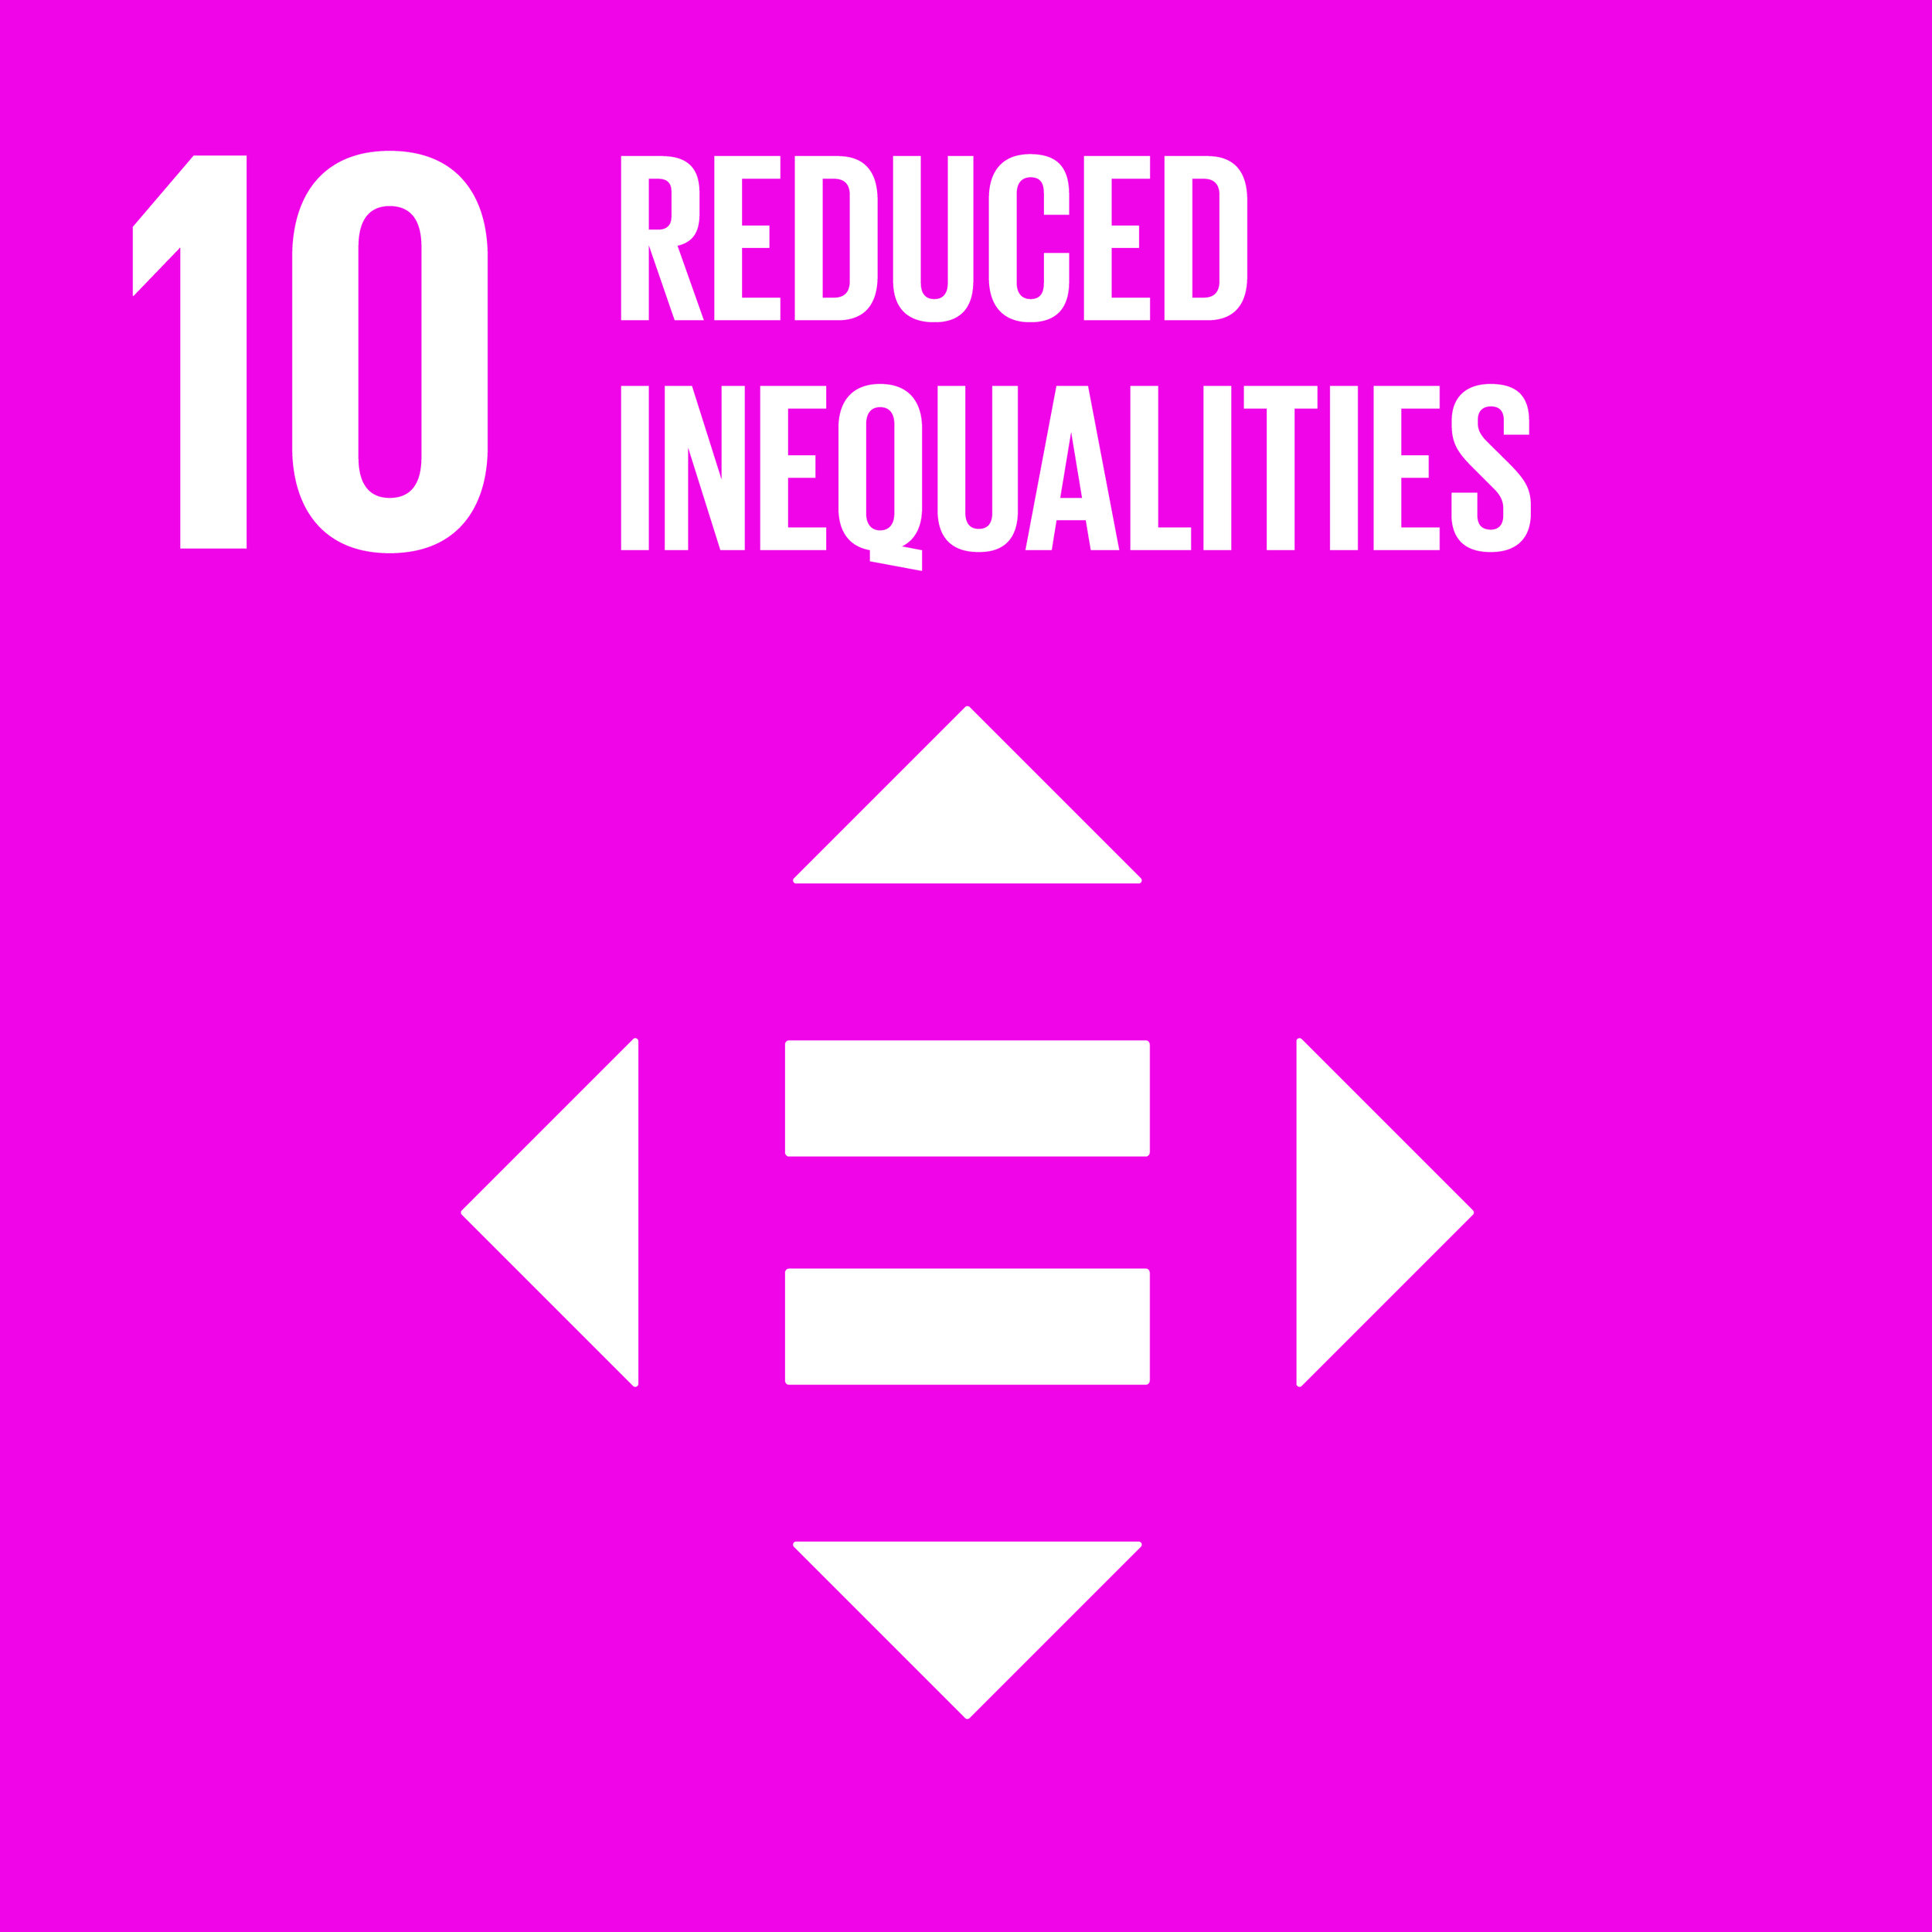 Sustainable Development Goals 10